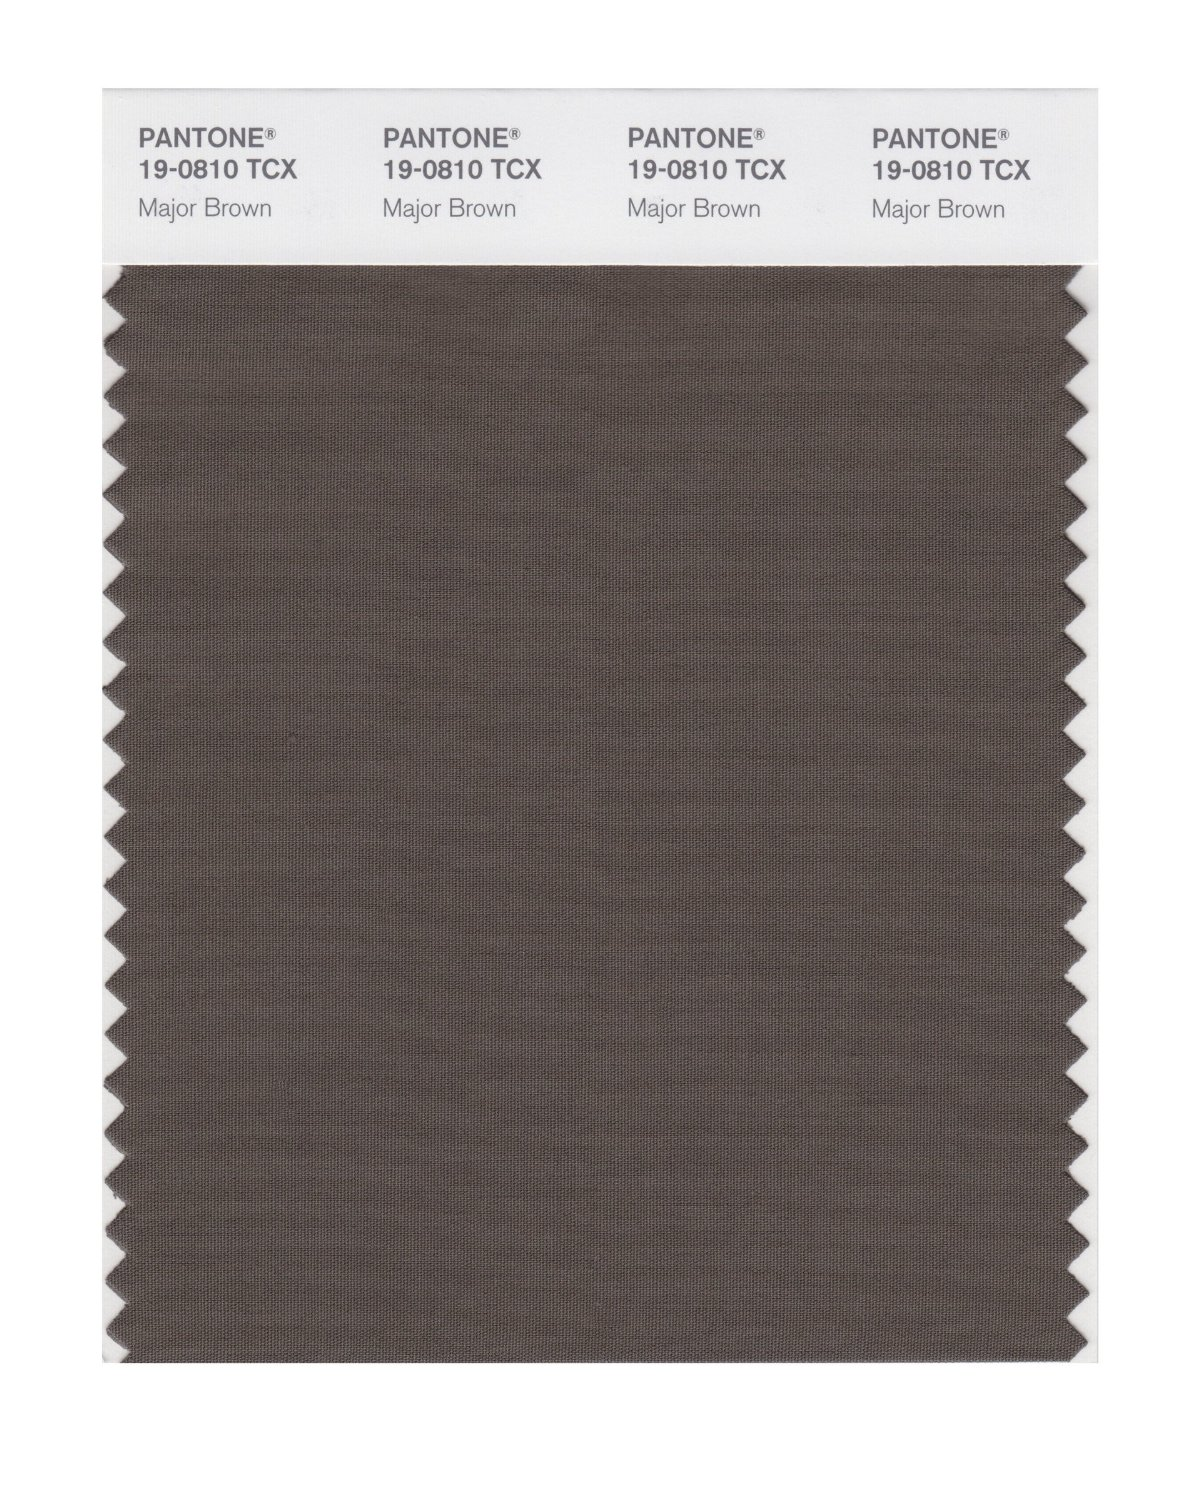 Pantone Smart Swatch 19-0810 Major Brown